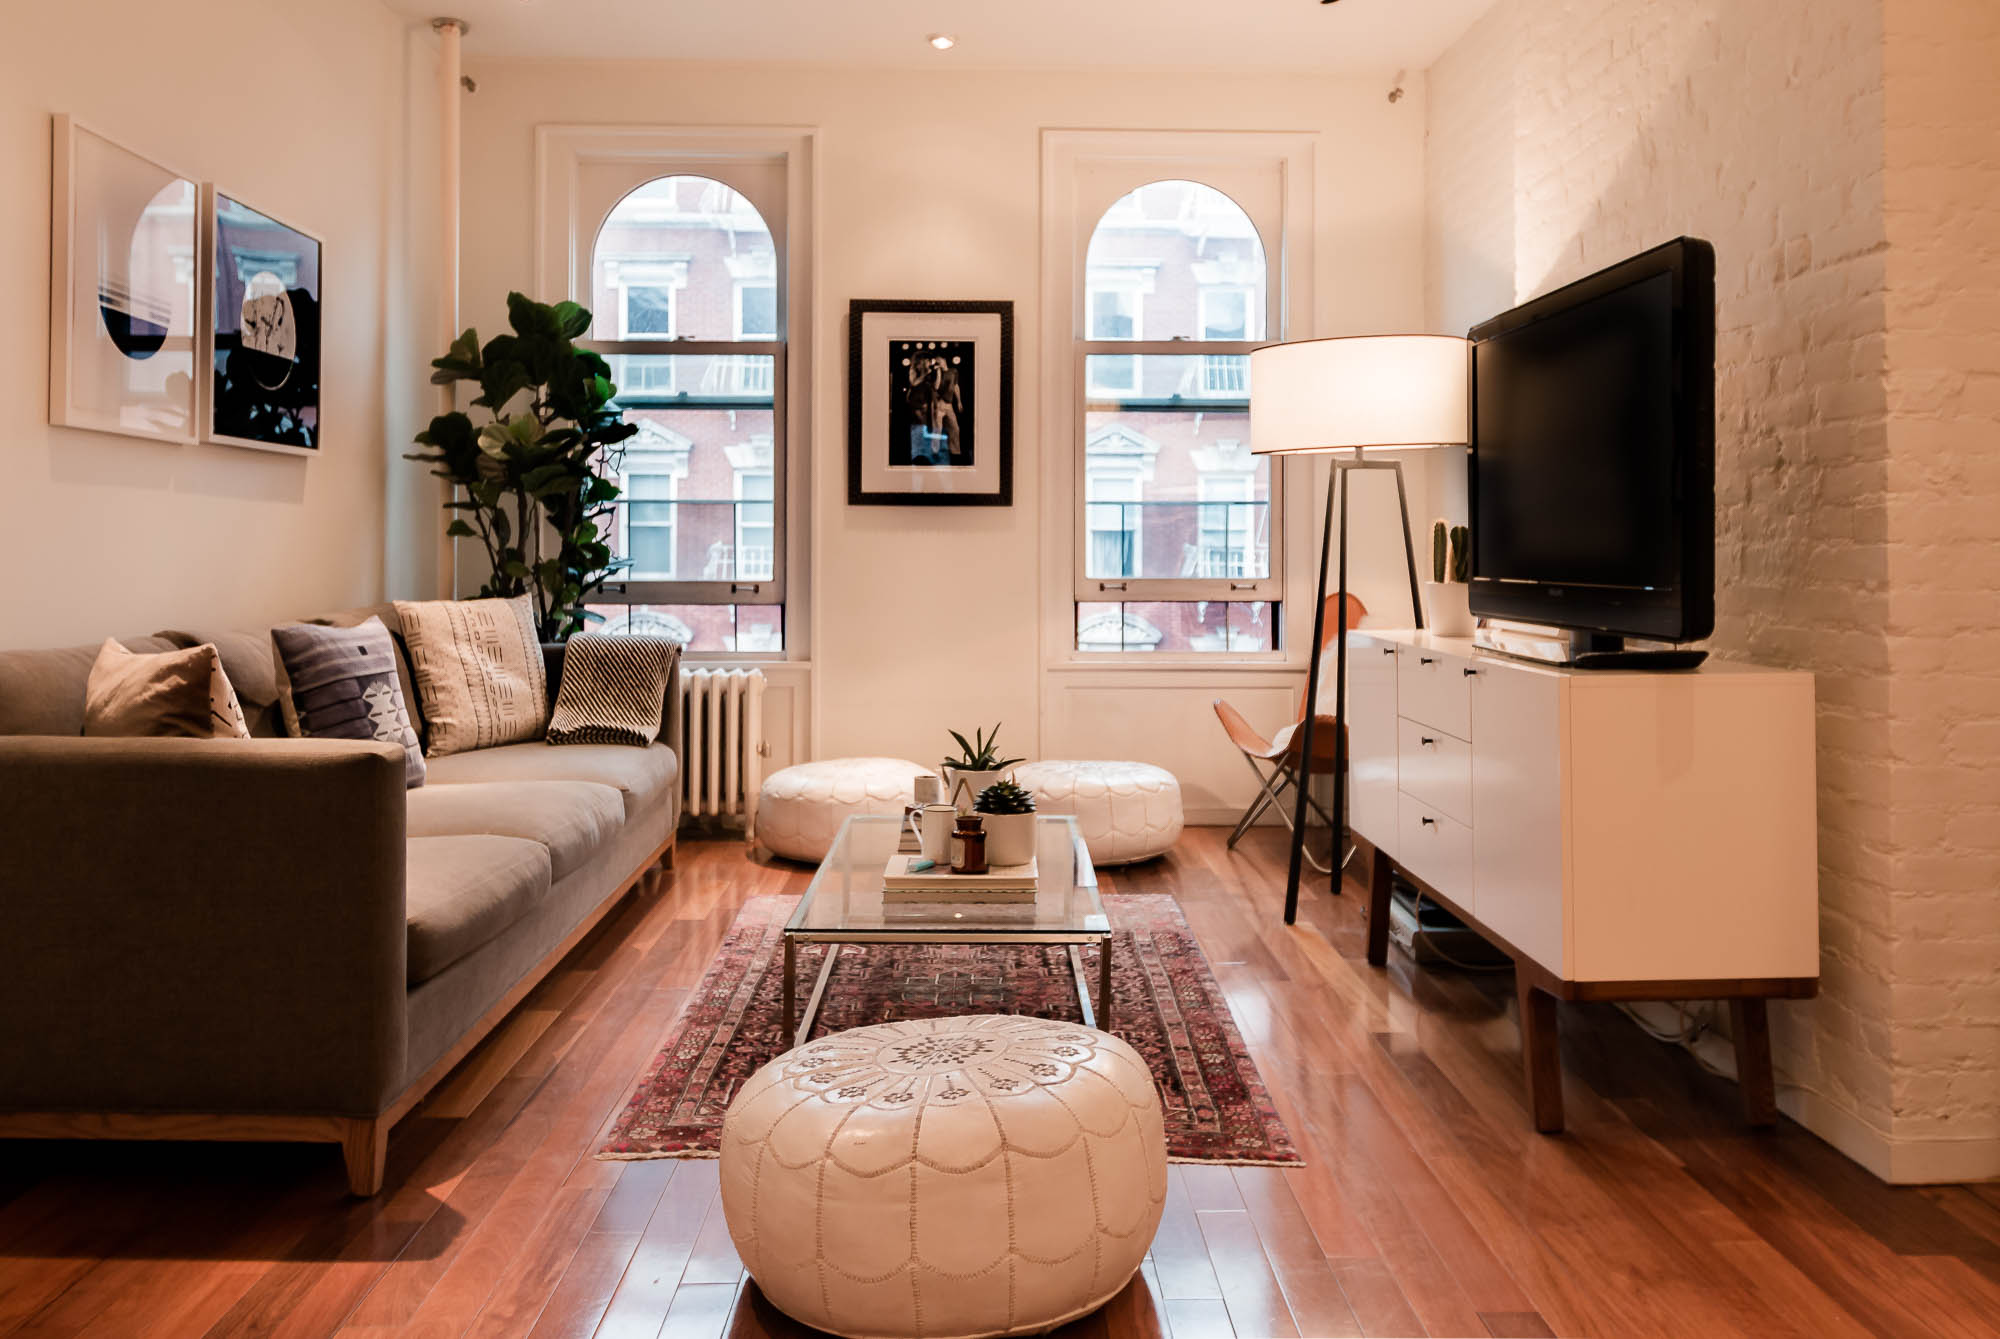 Greenwich Village Apartment of artist, Carly Berlin, for Apartment Therapy